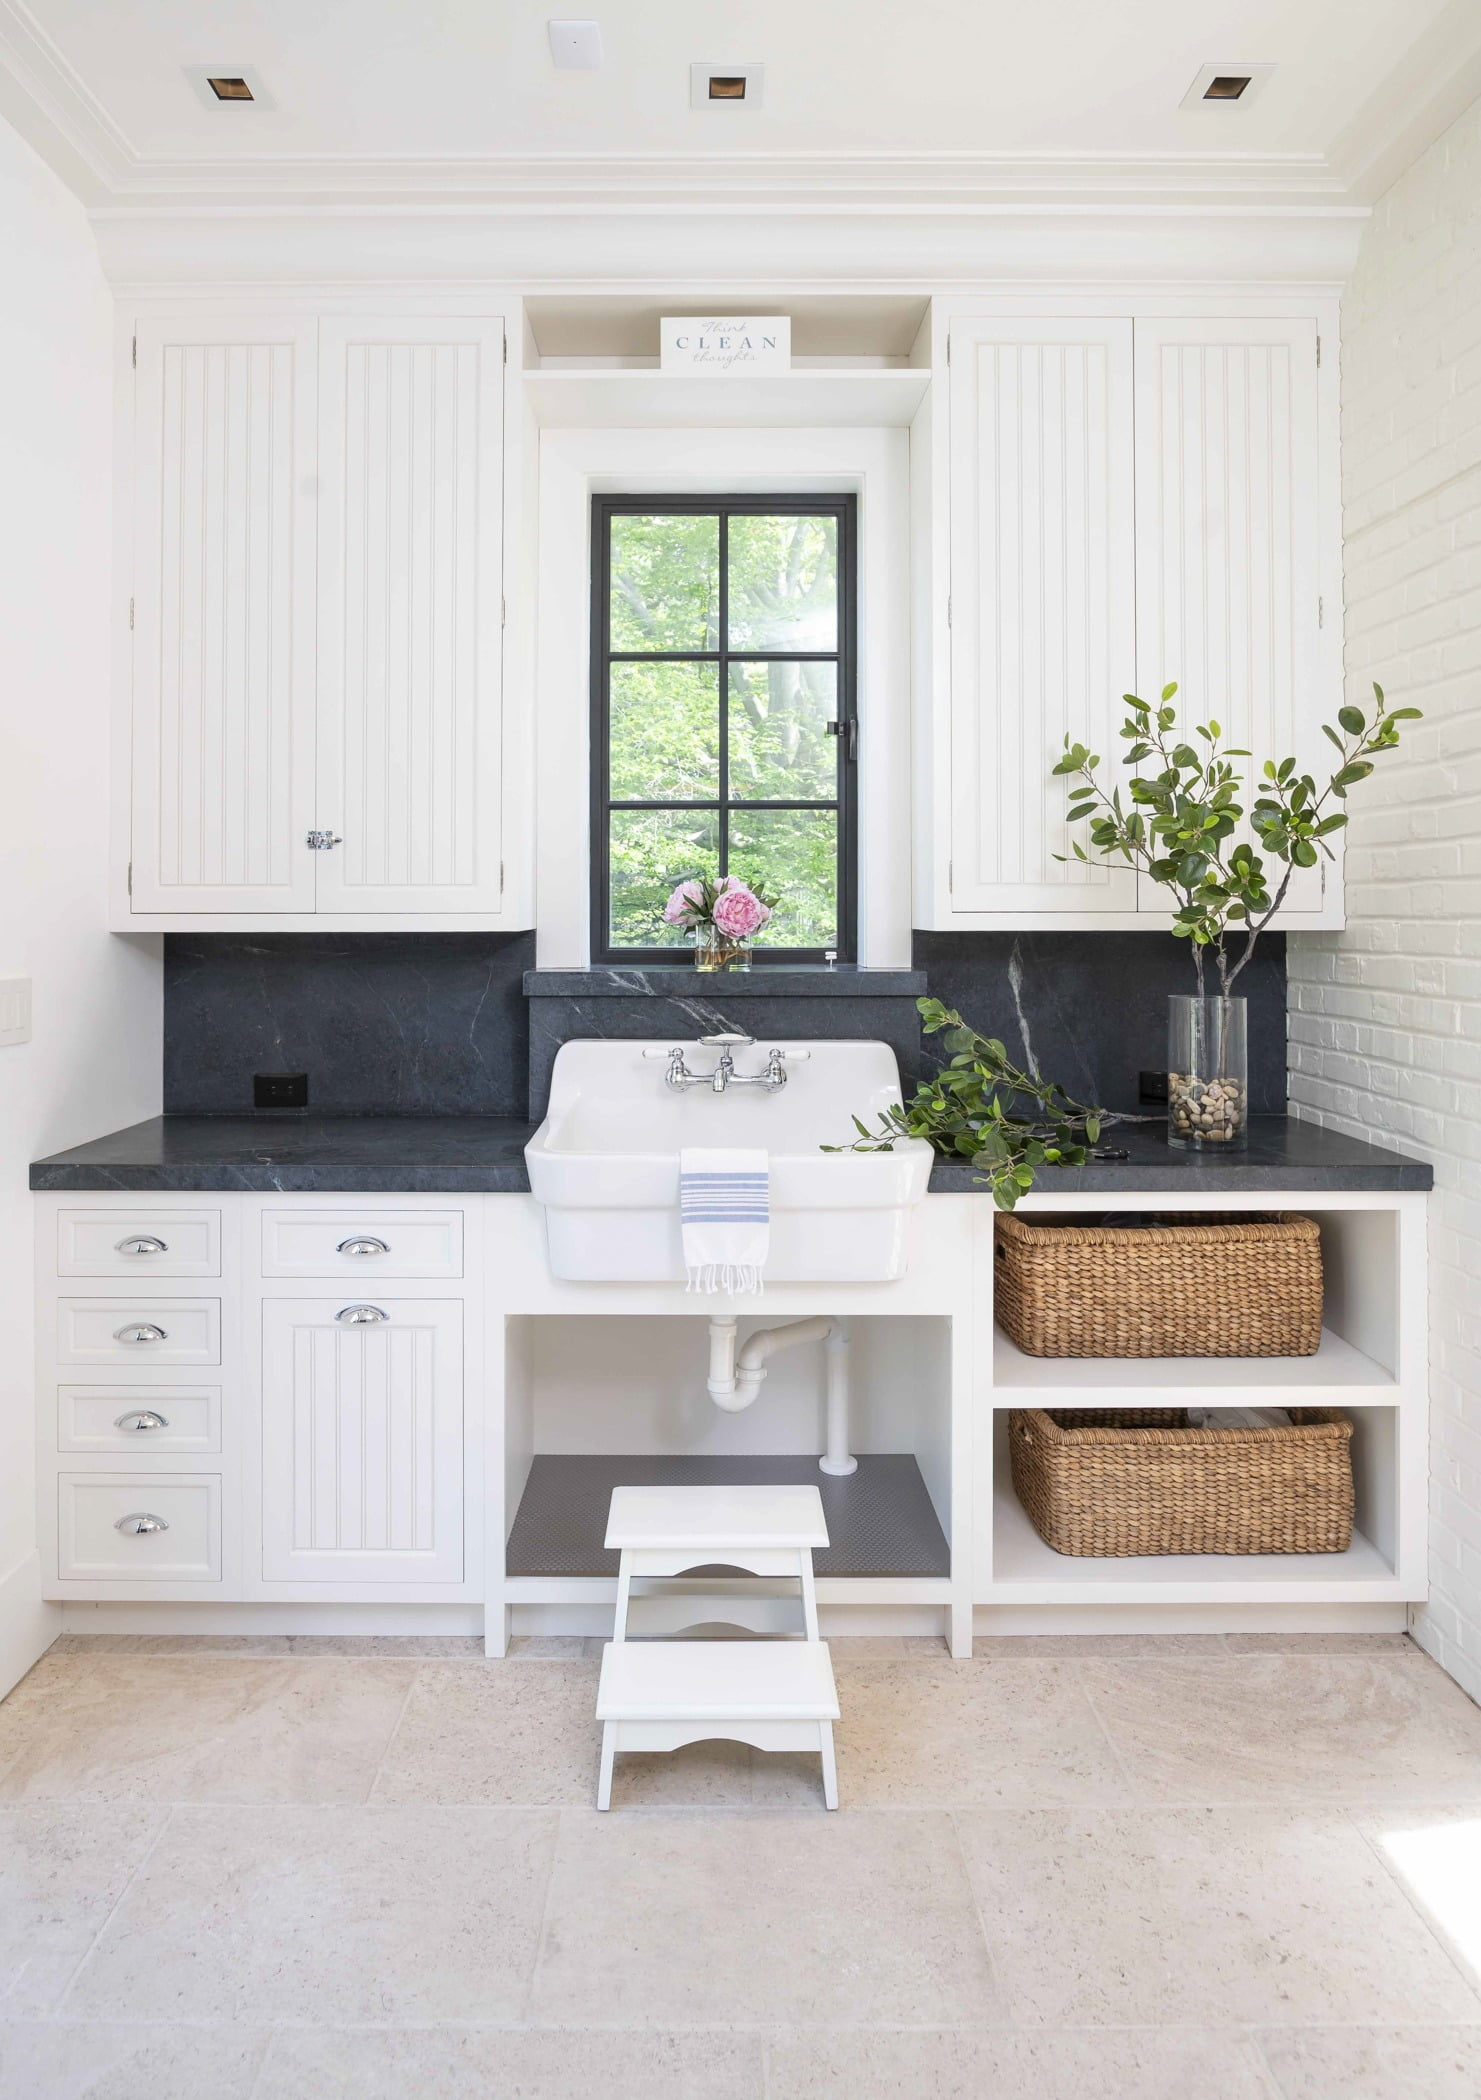 Coastal style washroom with white paneled cabinetry, dark granite countertops, and a dark metal window and door accent